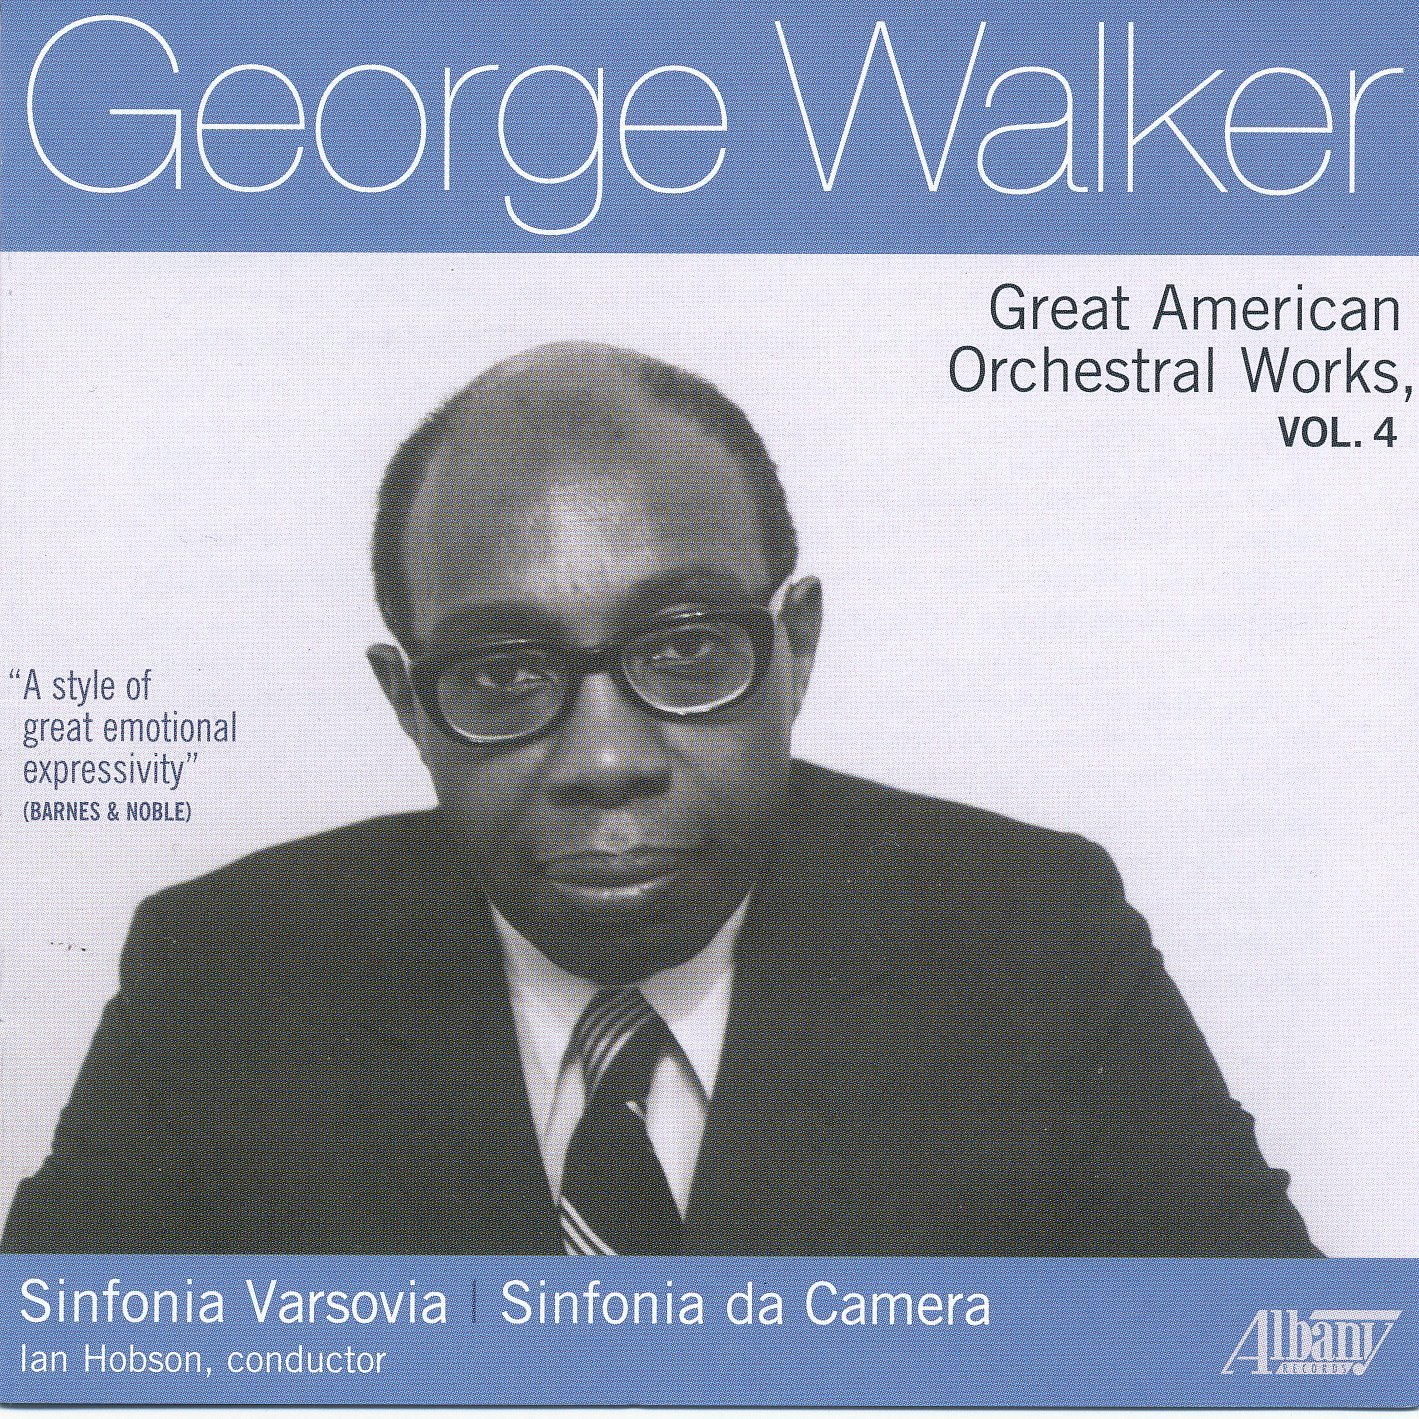 George Walker's Mass, Psalms 96 & 117 by Baltimore Symphony Orchestra;  Brahms' Piano Concerto No. 2, Op. 83 by George Walker, Piano; Albany  Records Troy1447 ...